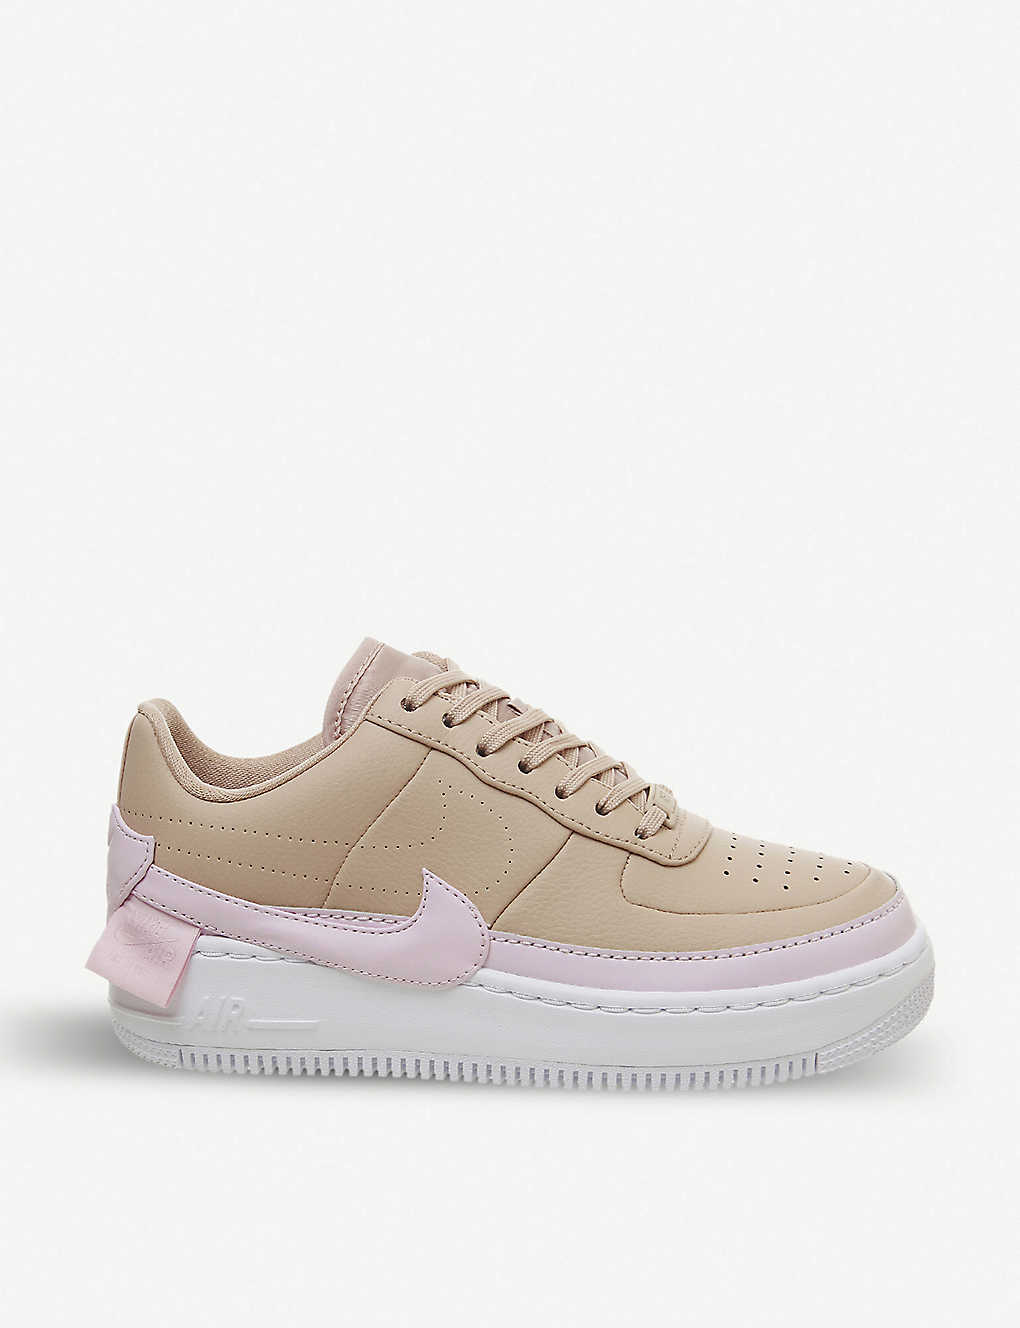 4daacb6ded0b NIKE - Air Force 1 Jester XX leather trainers